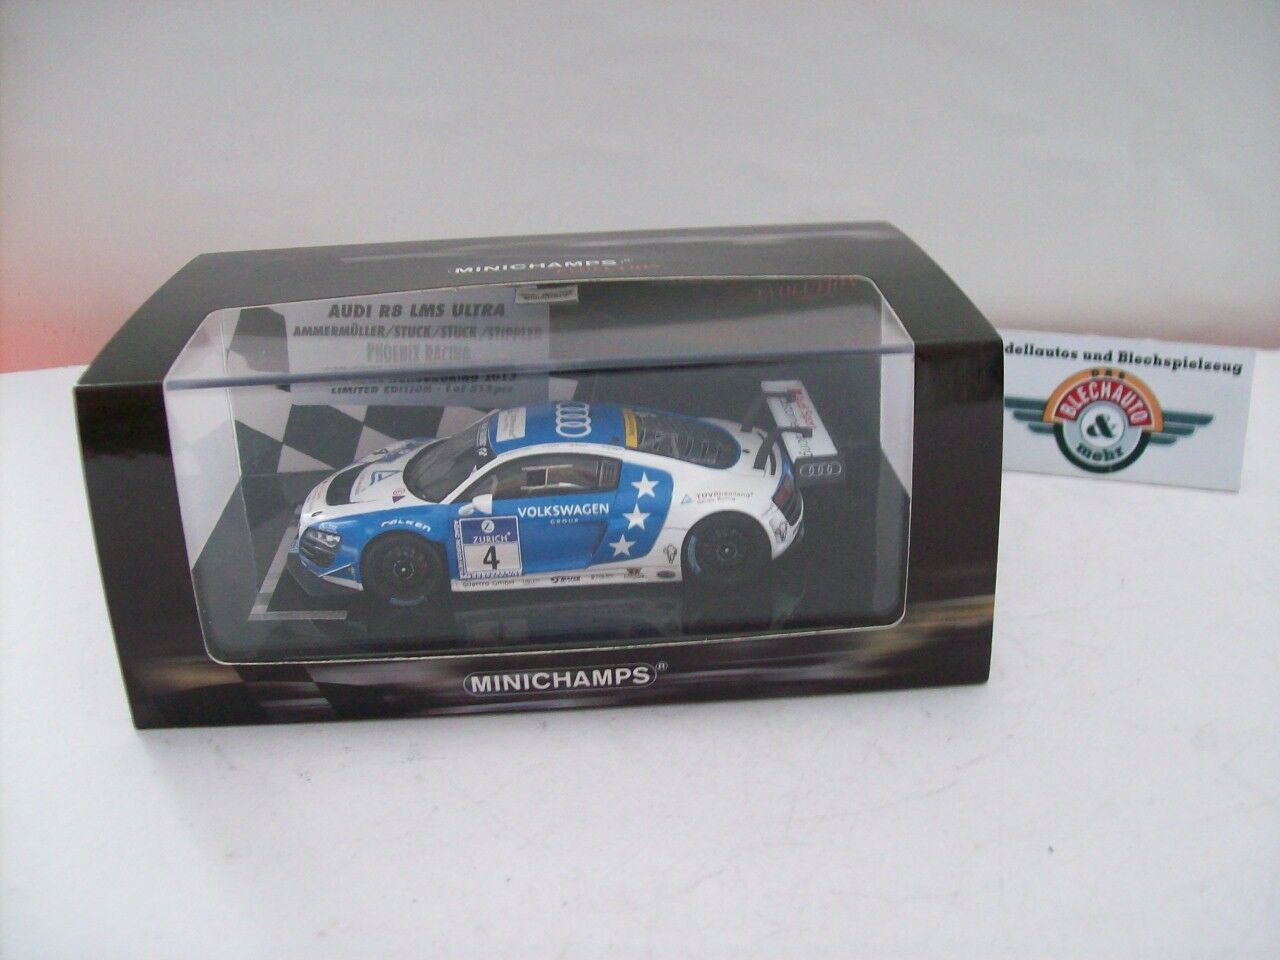 Audi r8 lms ultra  4 adac nürburgring  24h 2013,  1 43, packaging minichamps